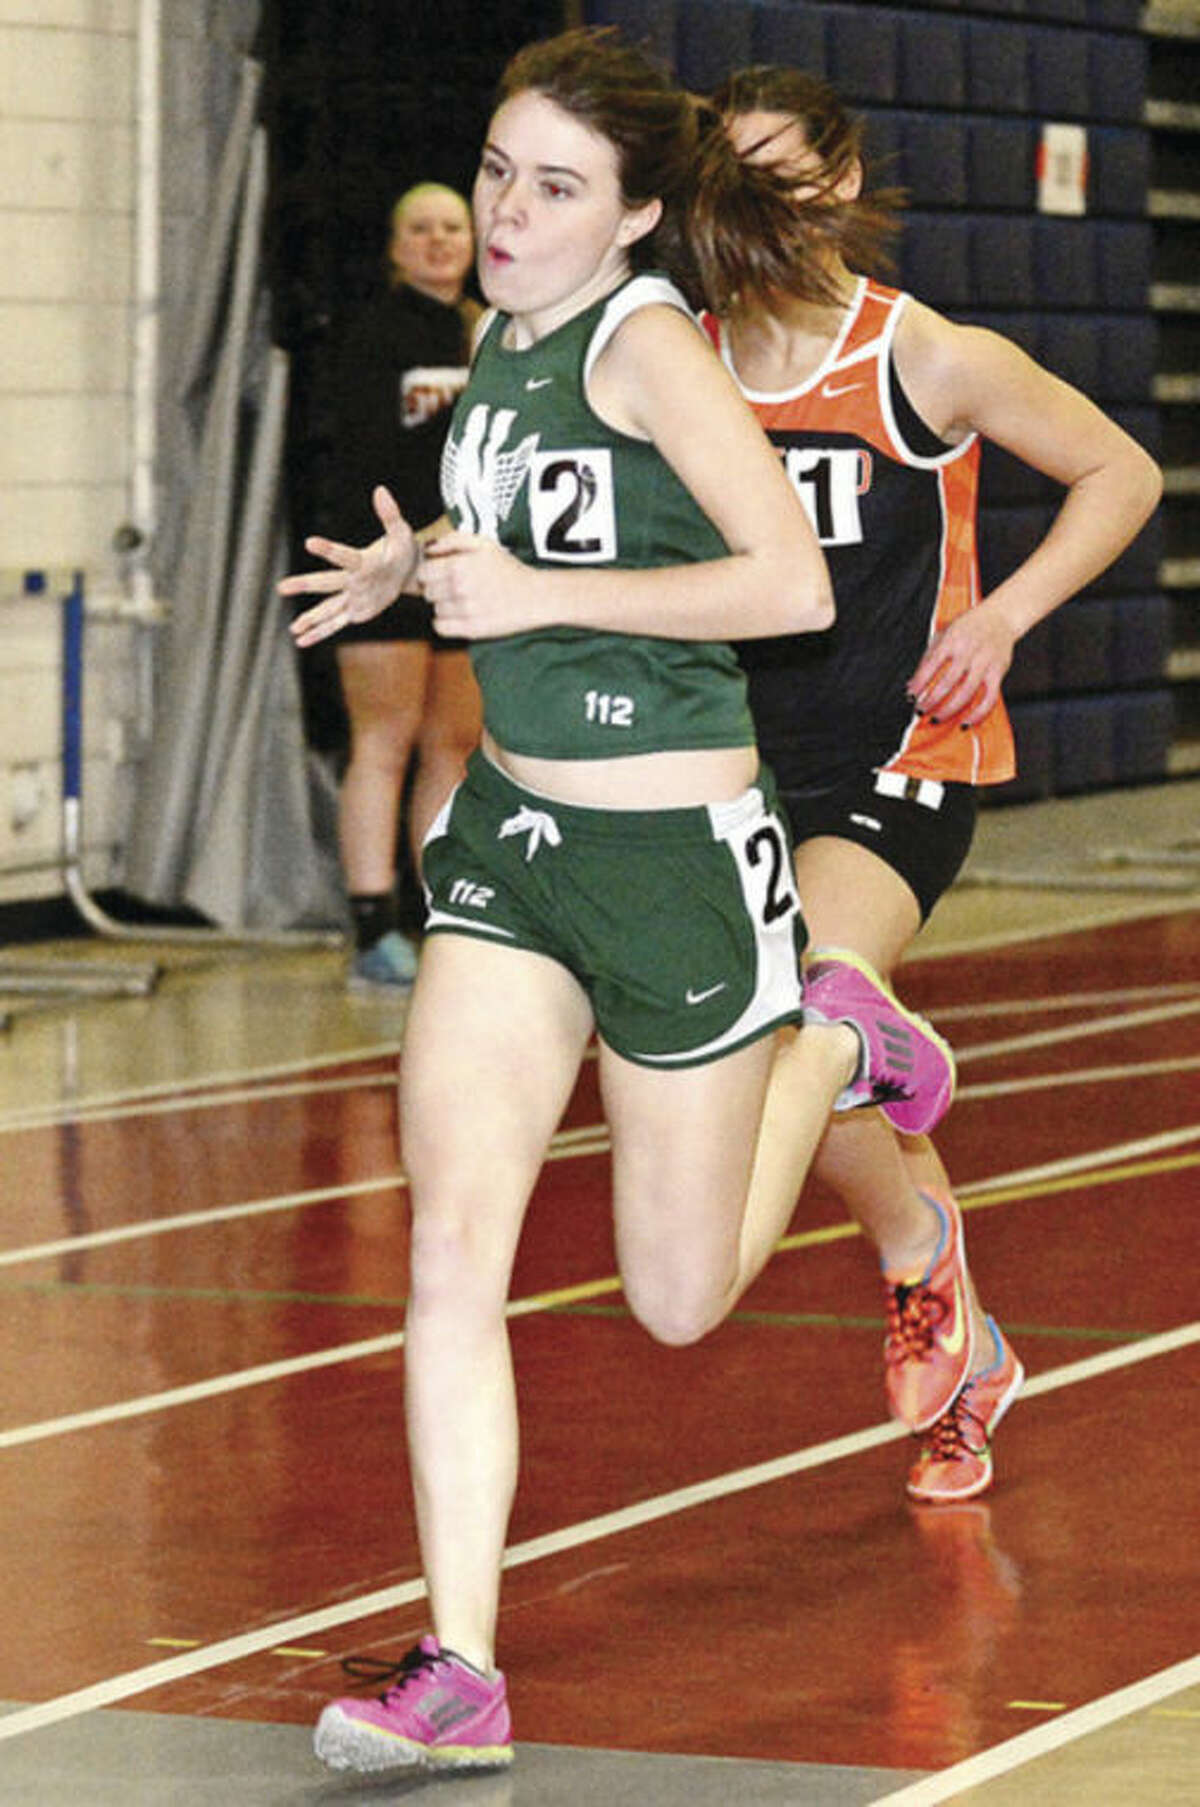 Norwalk High School's Claire Turner competes in the girls 600 meters during the indoor track meet in Wilton at the Zeoli Field House on Saturday. Hour photo/ Erik Trautmann